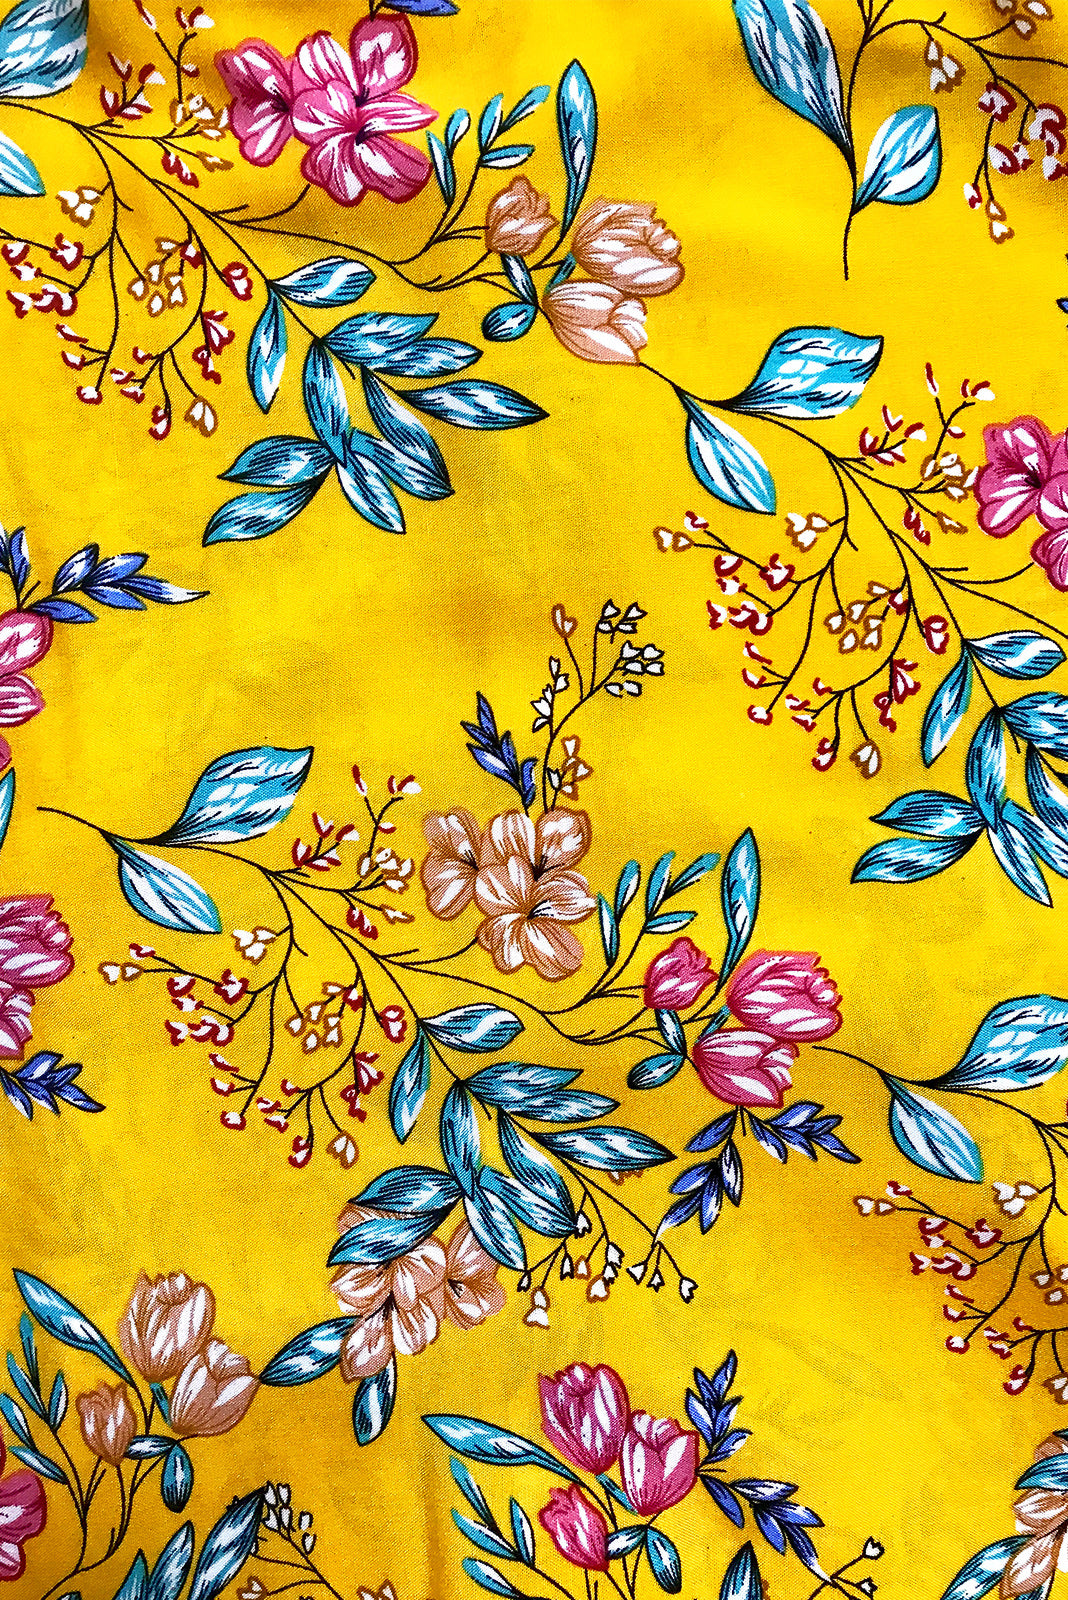 Fabric swatch, 100% woven viscose, bright gold base with medium blue, fuchsia, beige, black and white floral print.